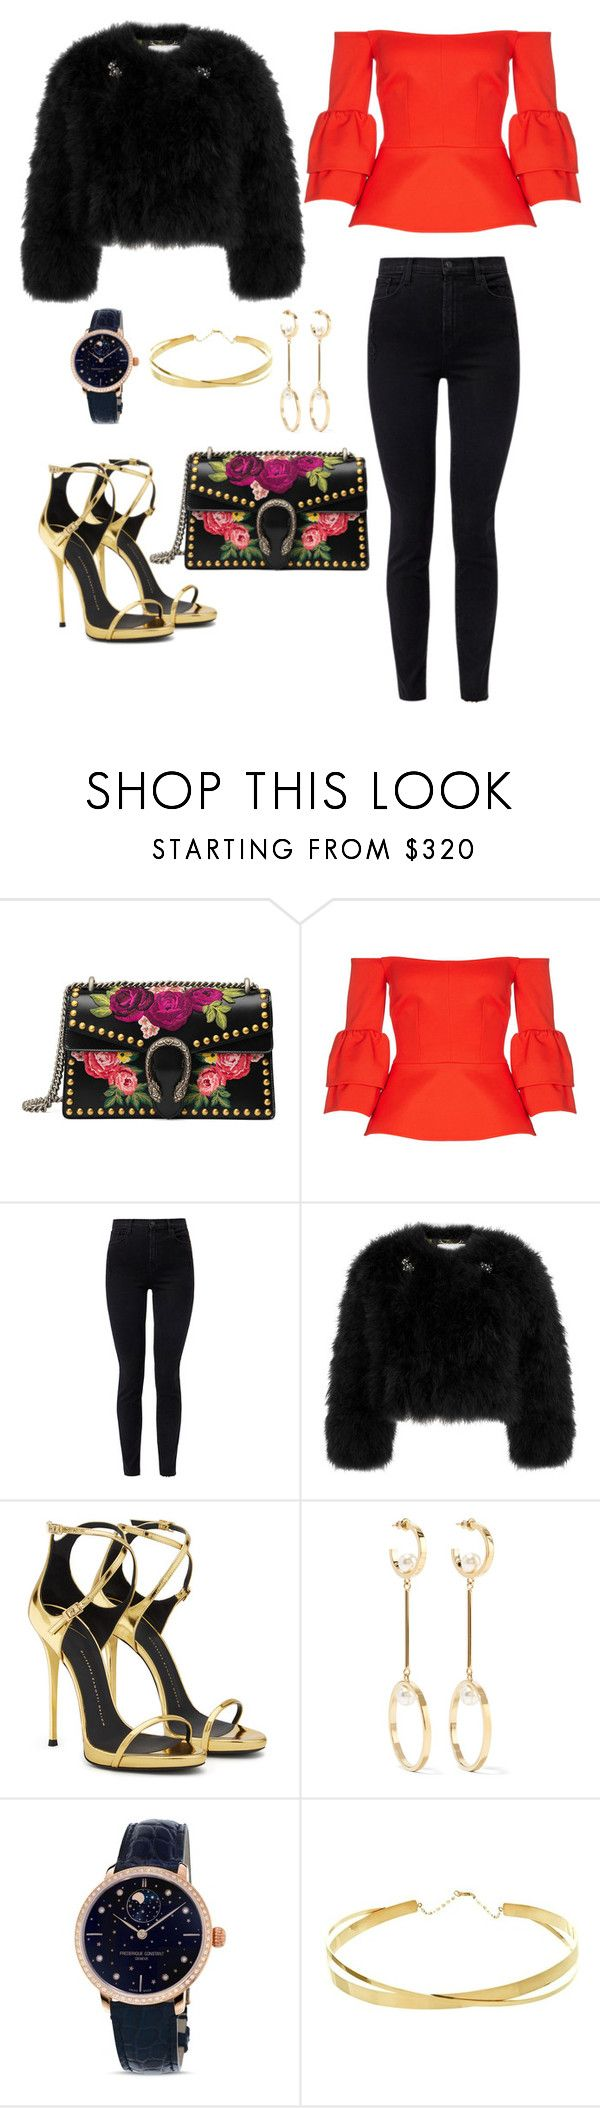 """Untitled #1854"" by rubysparks90 ❤ liked on Polyvore featuring Gucci, Safiyaa, J Brand, Erdem, Giuseppe Zanotti, Chloé, Frédérique Constant and Lana Jewelry"